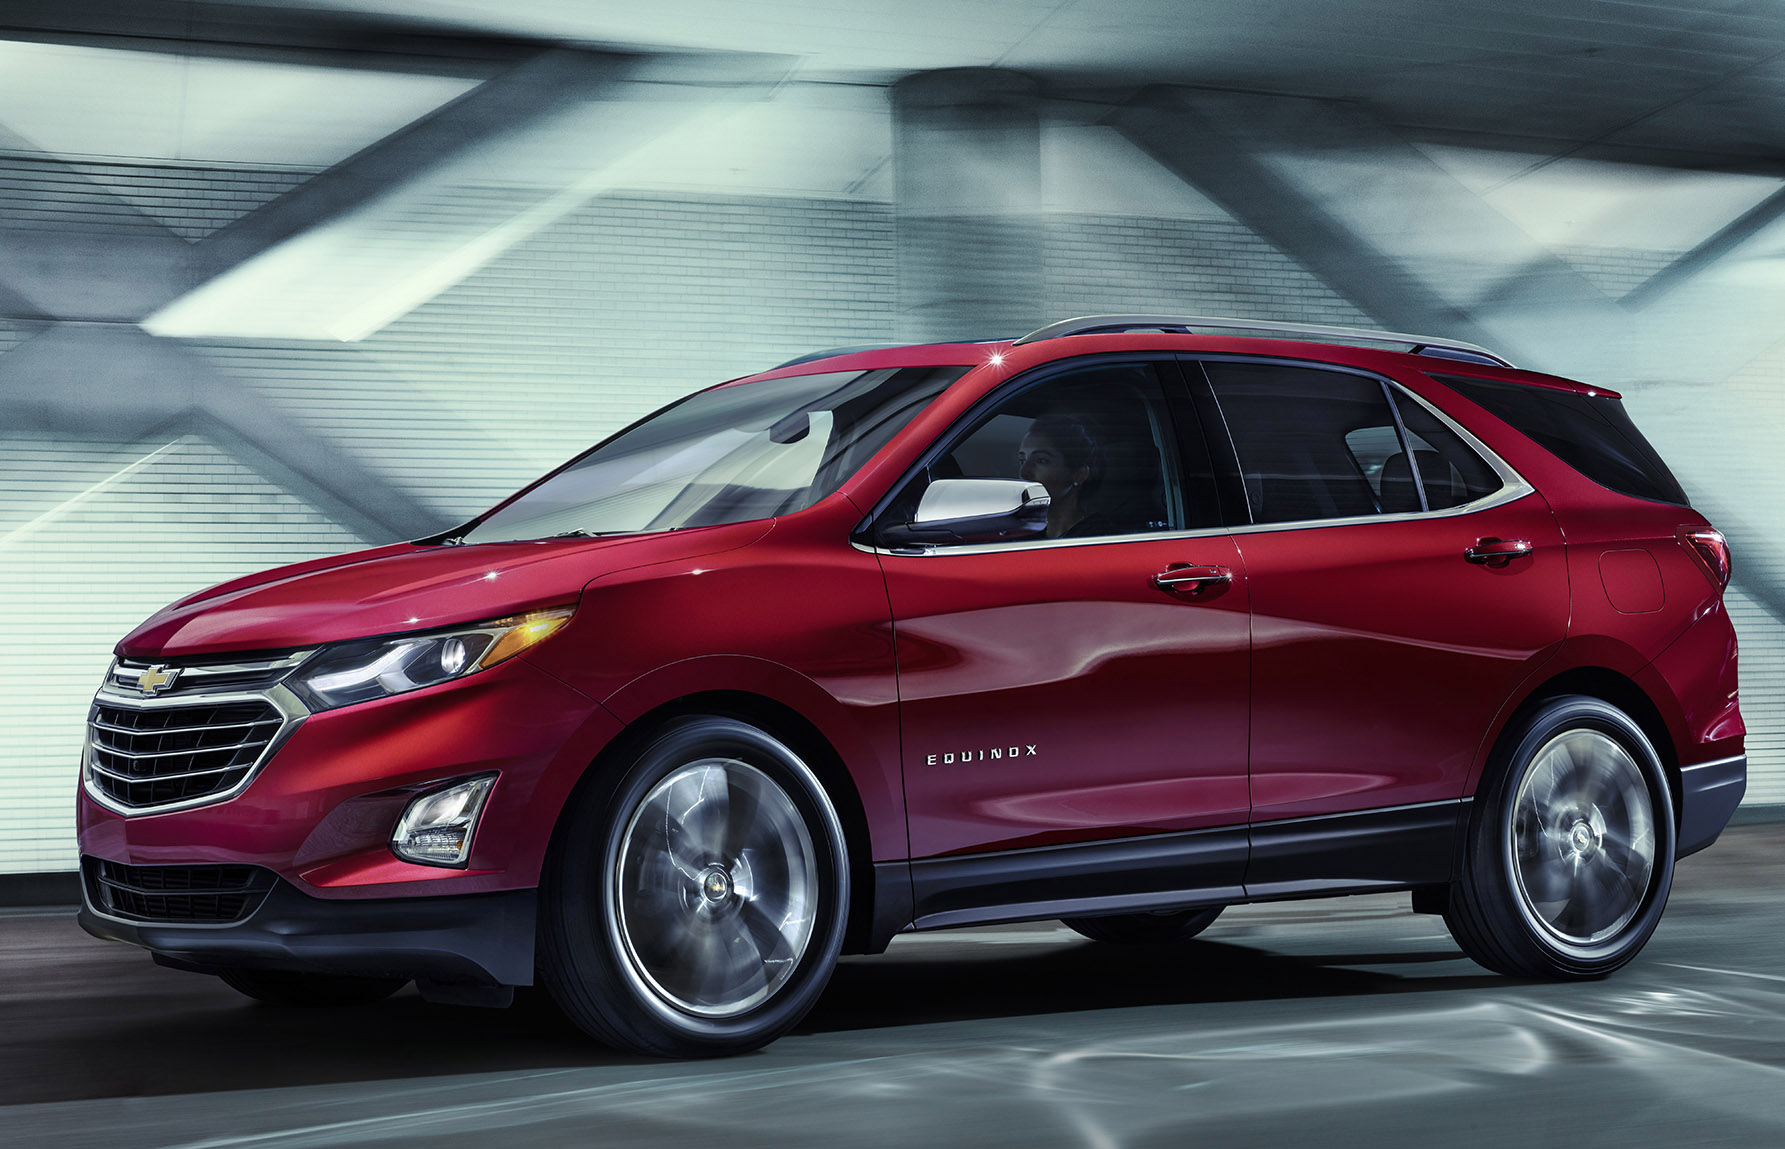 Next-generation Chevy Equinox crossover now on sale